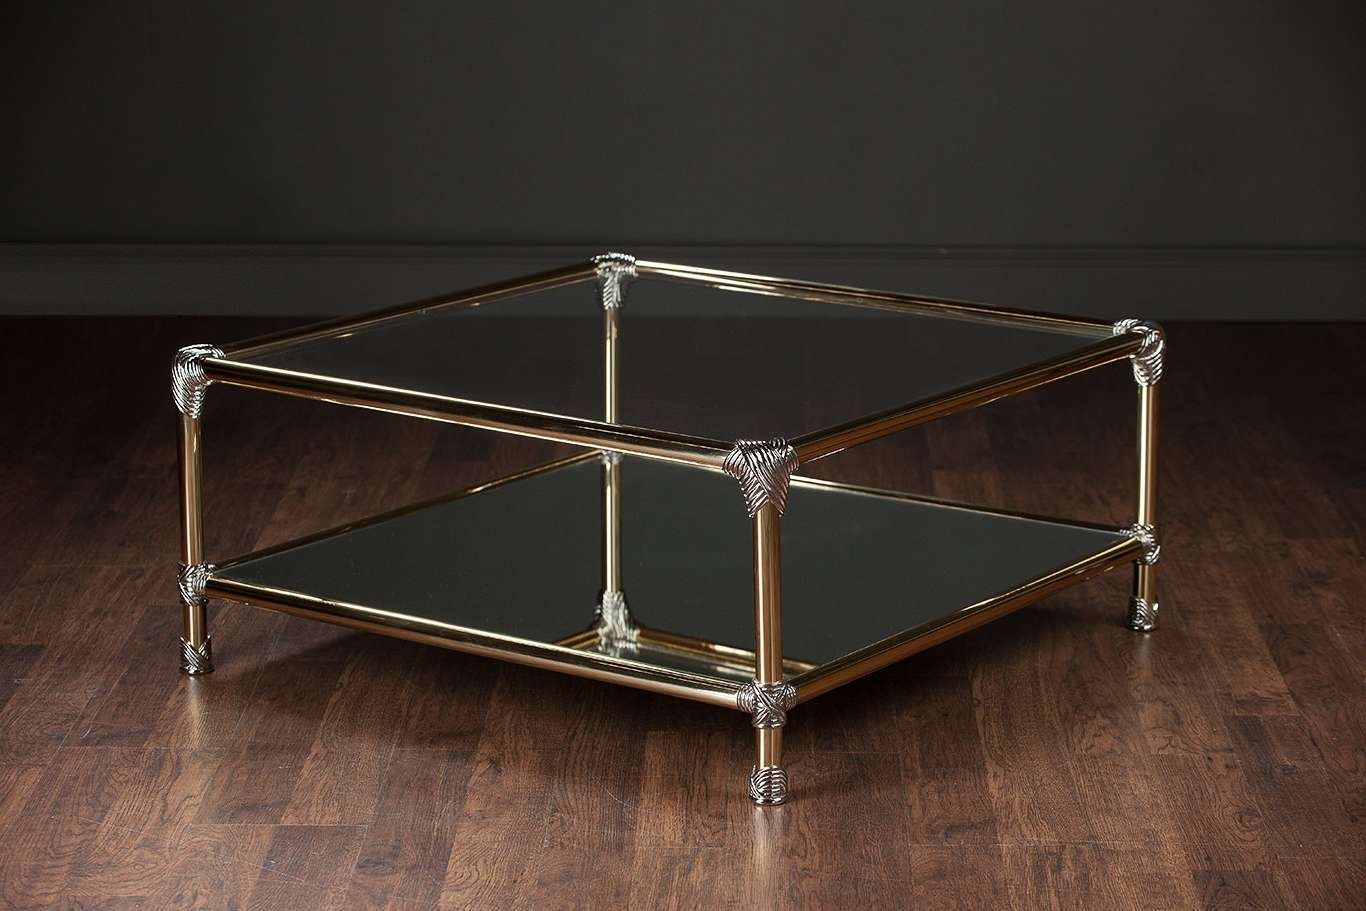 Vintage Brass And Chrome Coffee Table – Mecox Gardens Regarding Most Popular Vintage Glass Coffee Tables (View 11 of 20)